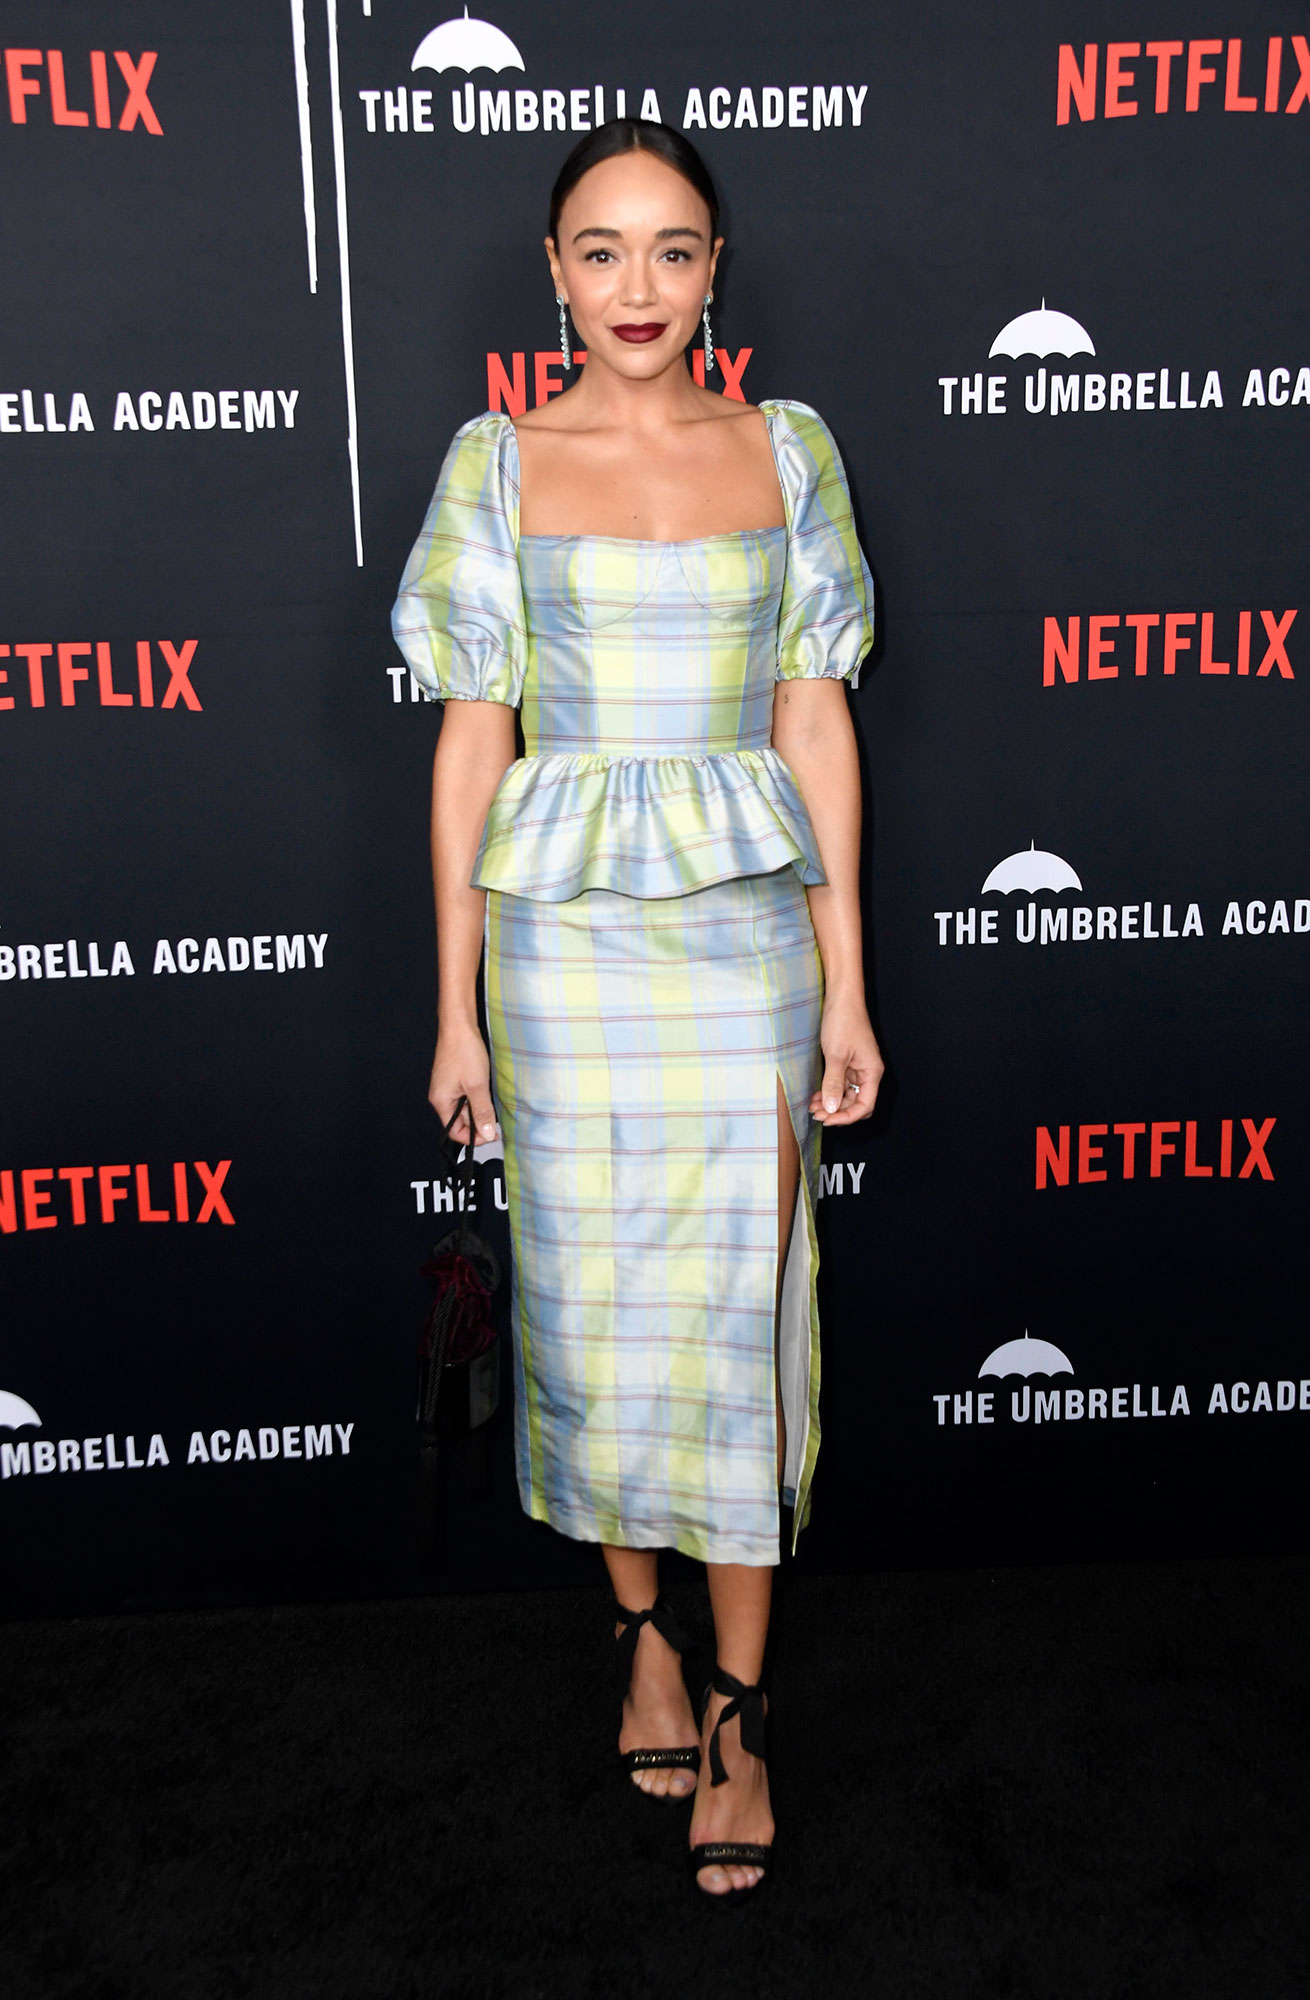 "Revenge's Ashley Madekwe: Emily VanCamp and Josh Bowman's Wedding Was 'Beautiful' - Ashley Madekwe attends the Premiere of Netflix's ""The Umbrella Academy"" at ArcLight Hollywood on February 12, 2019 in Hollywood, California."